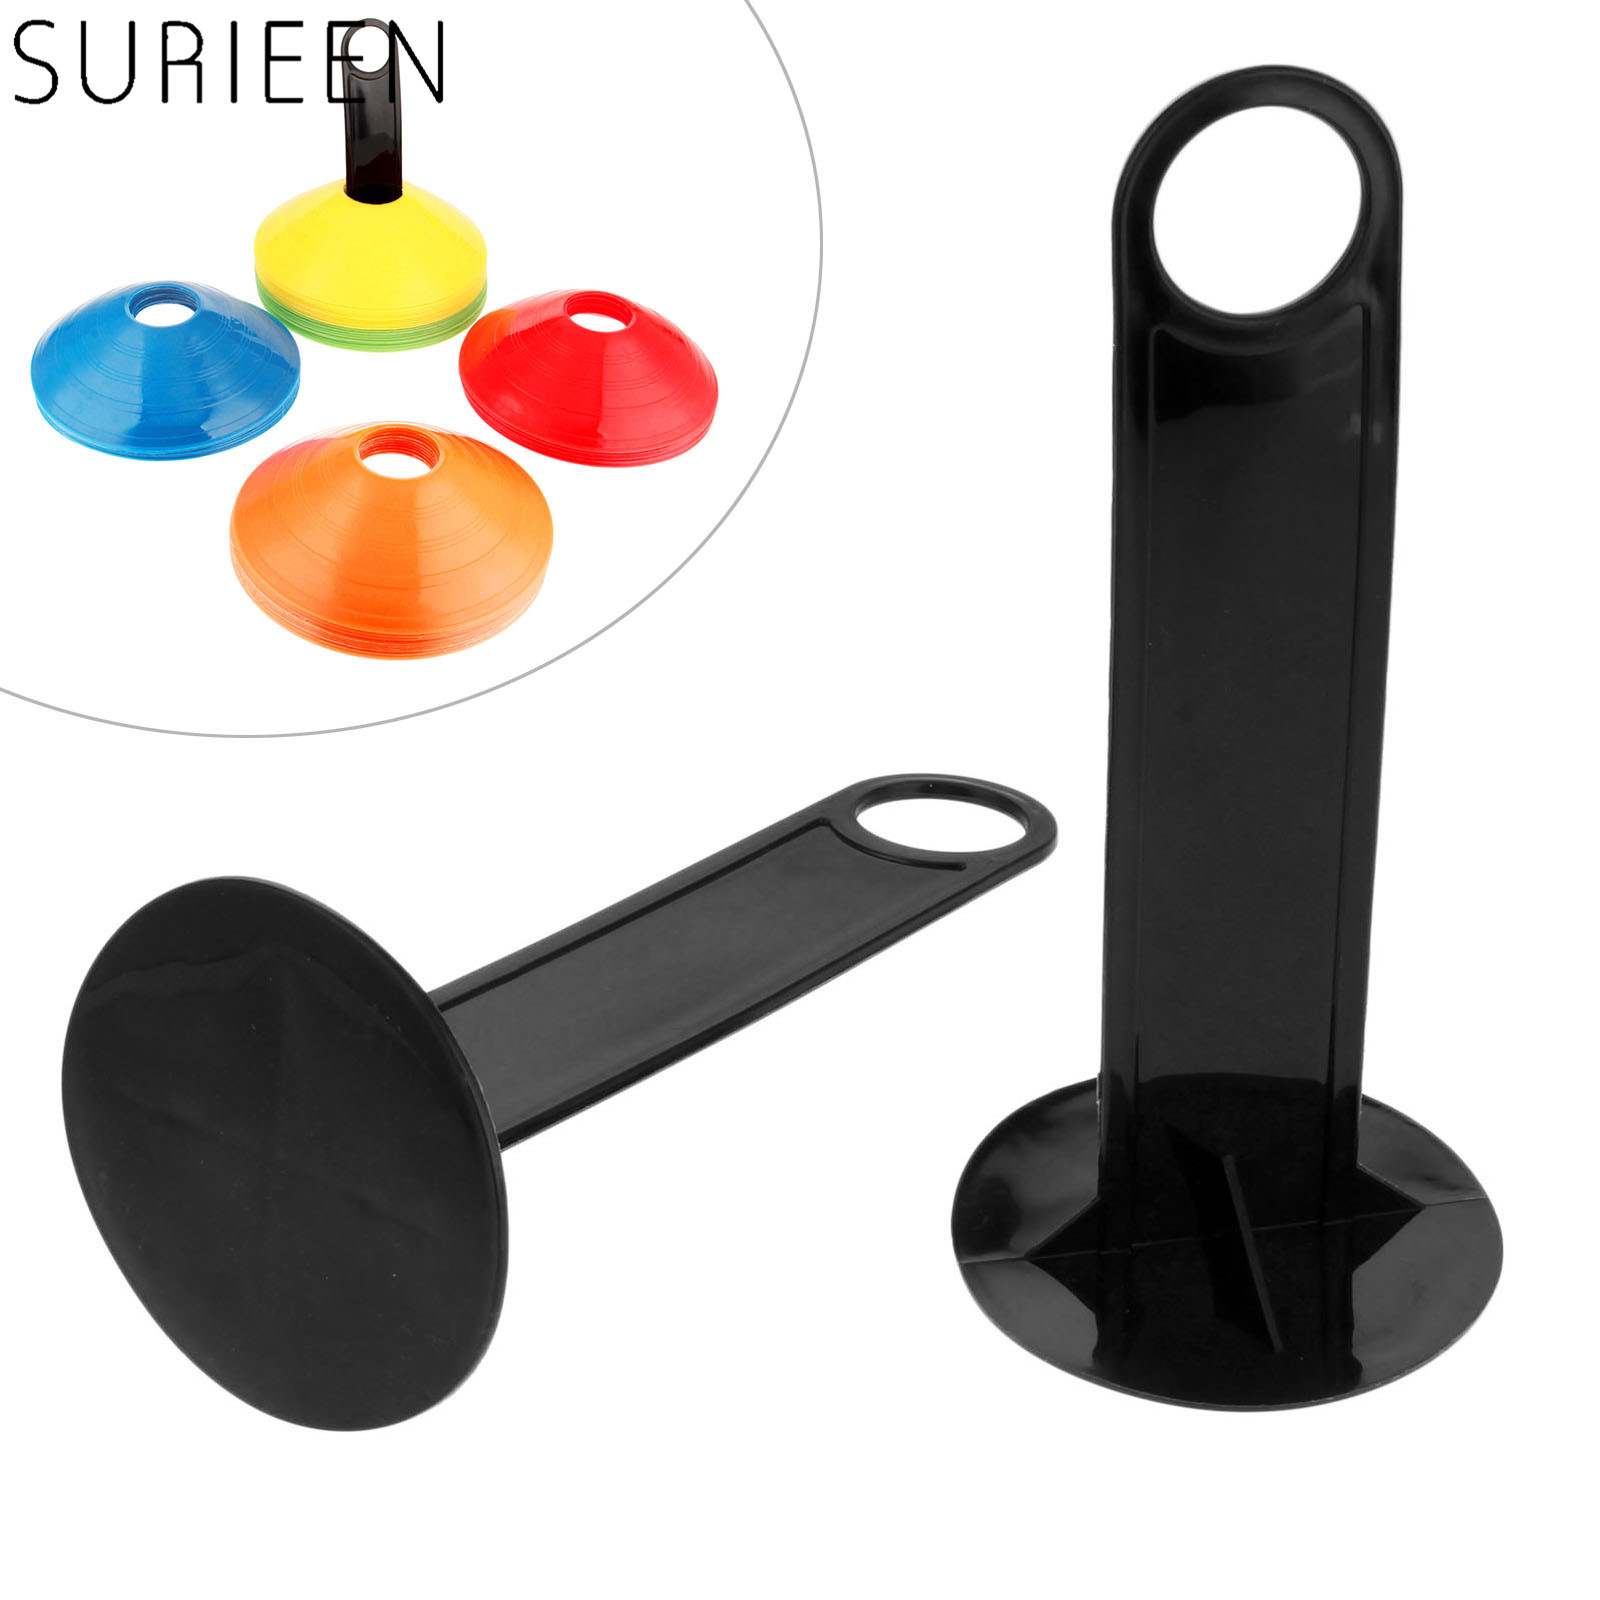 1 Pc Easy To Carry/store Soccer Drill Agility Training Marker Disc Cone Holder Carrier Caddy Sport Plastic Football Accessories